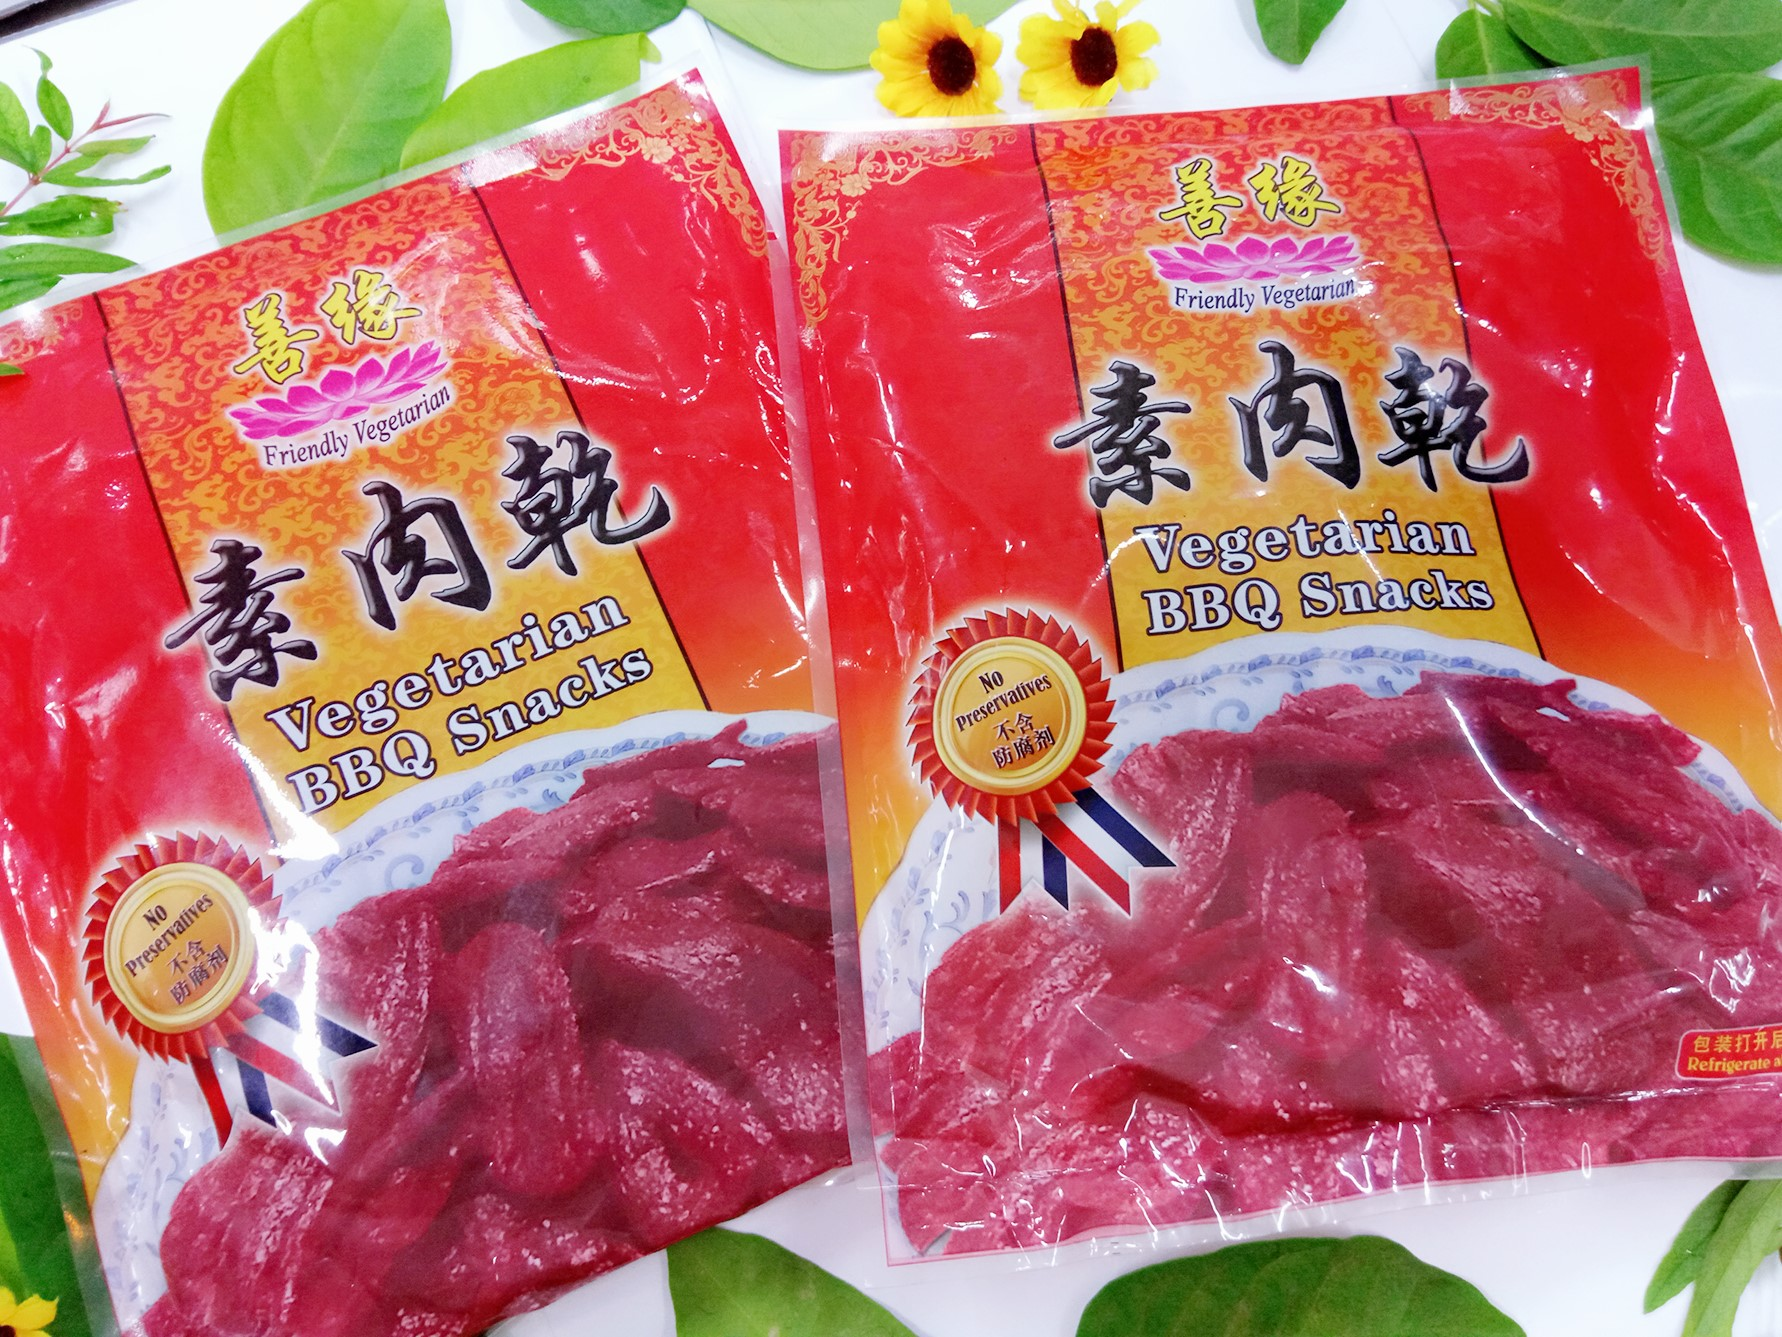 Image Friendly BBQ Snack Spicy Carton 善缘-辣味素肉干(圆形) 3000grams